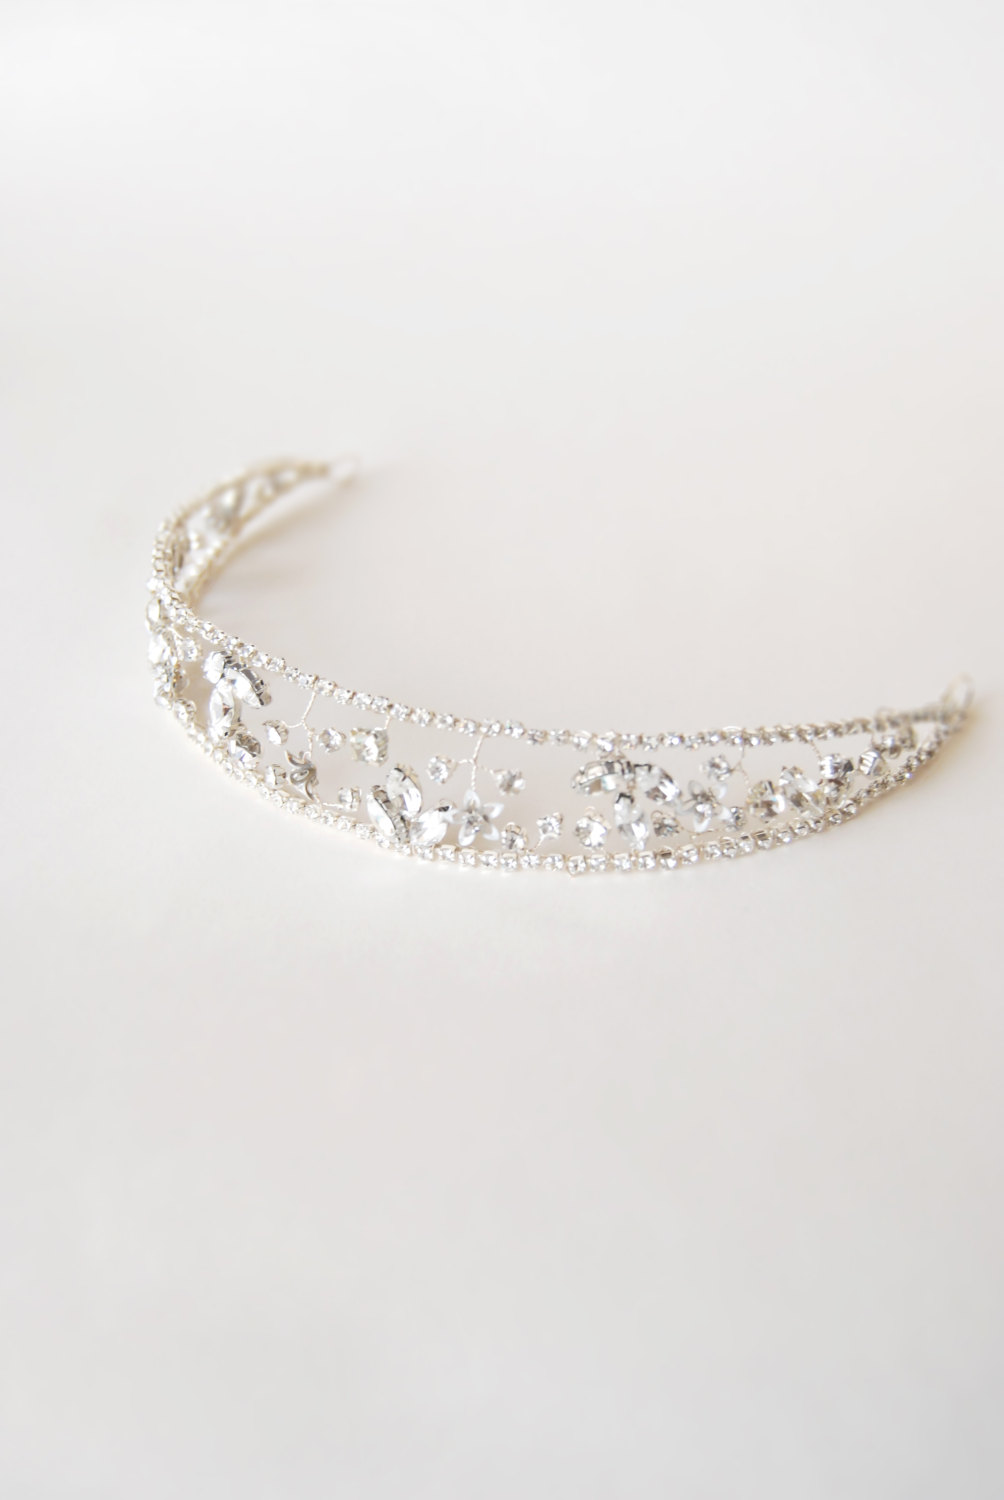 Bridal Crown from Elibre Handmade